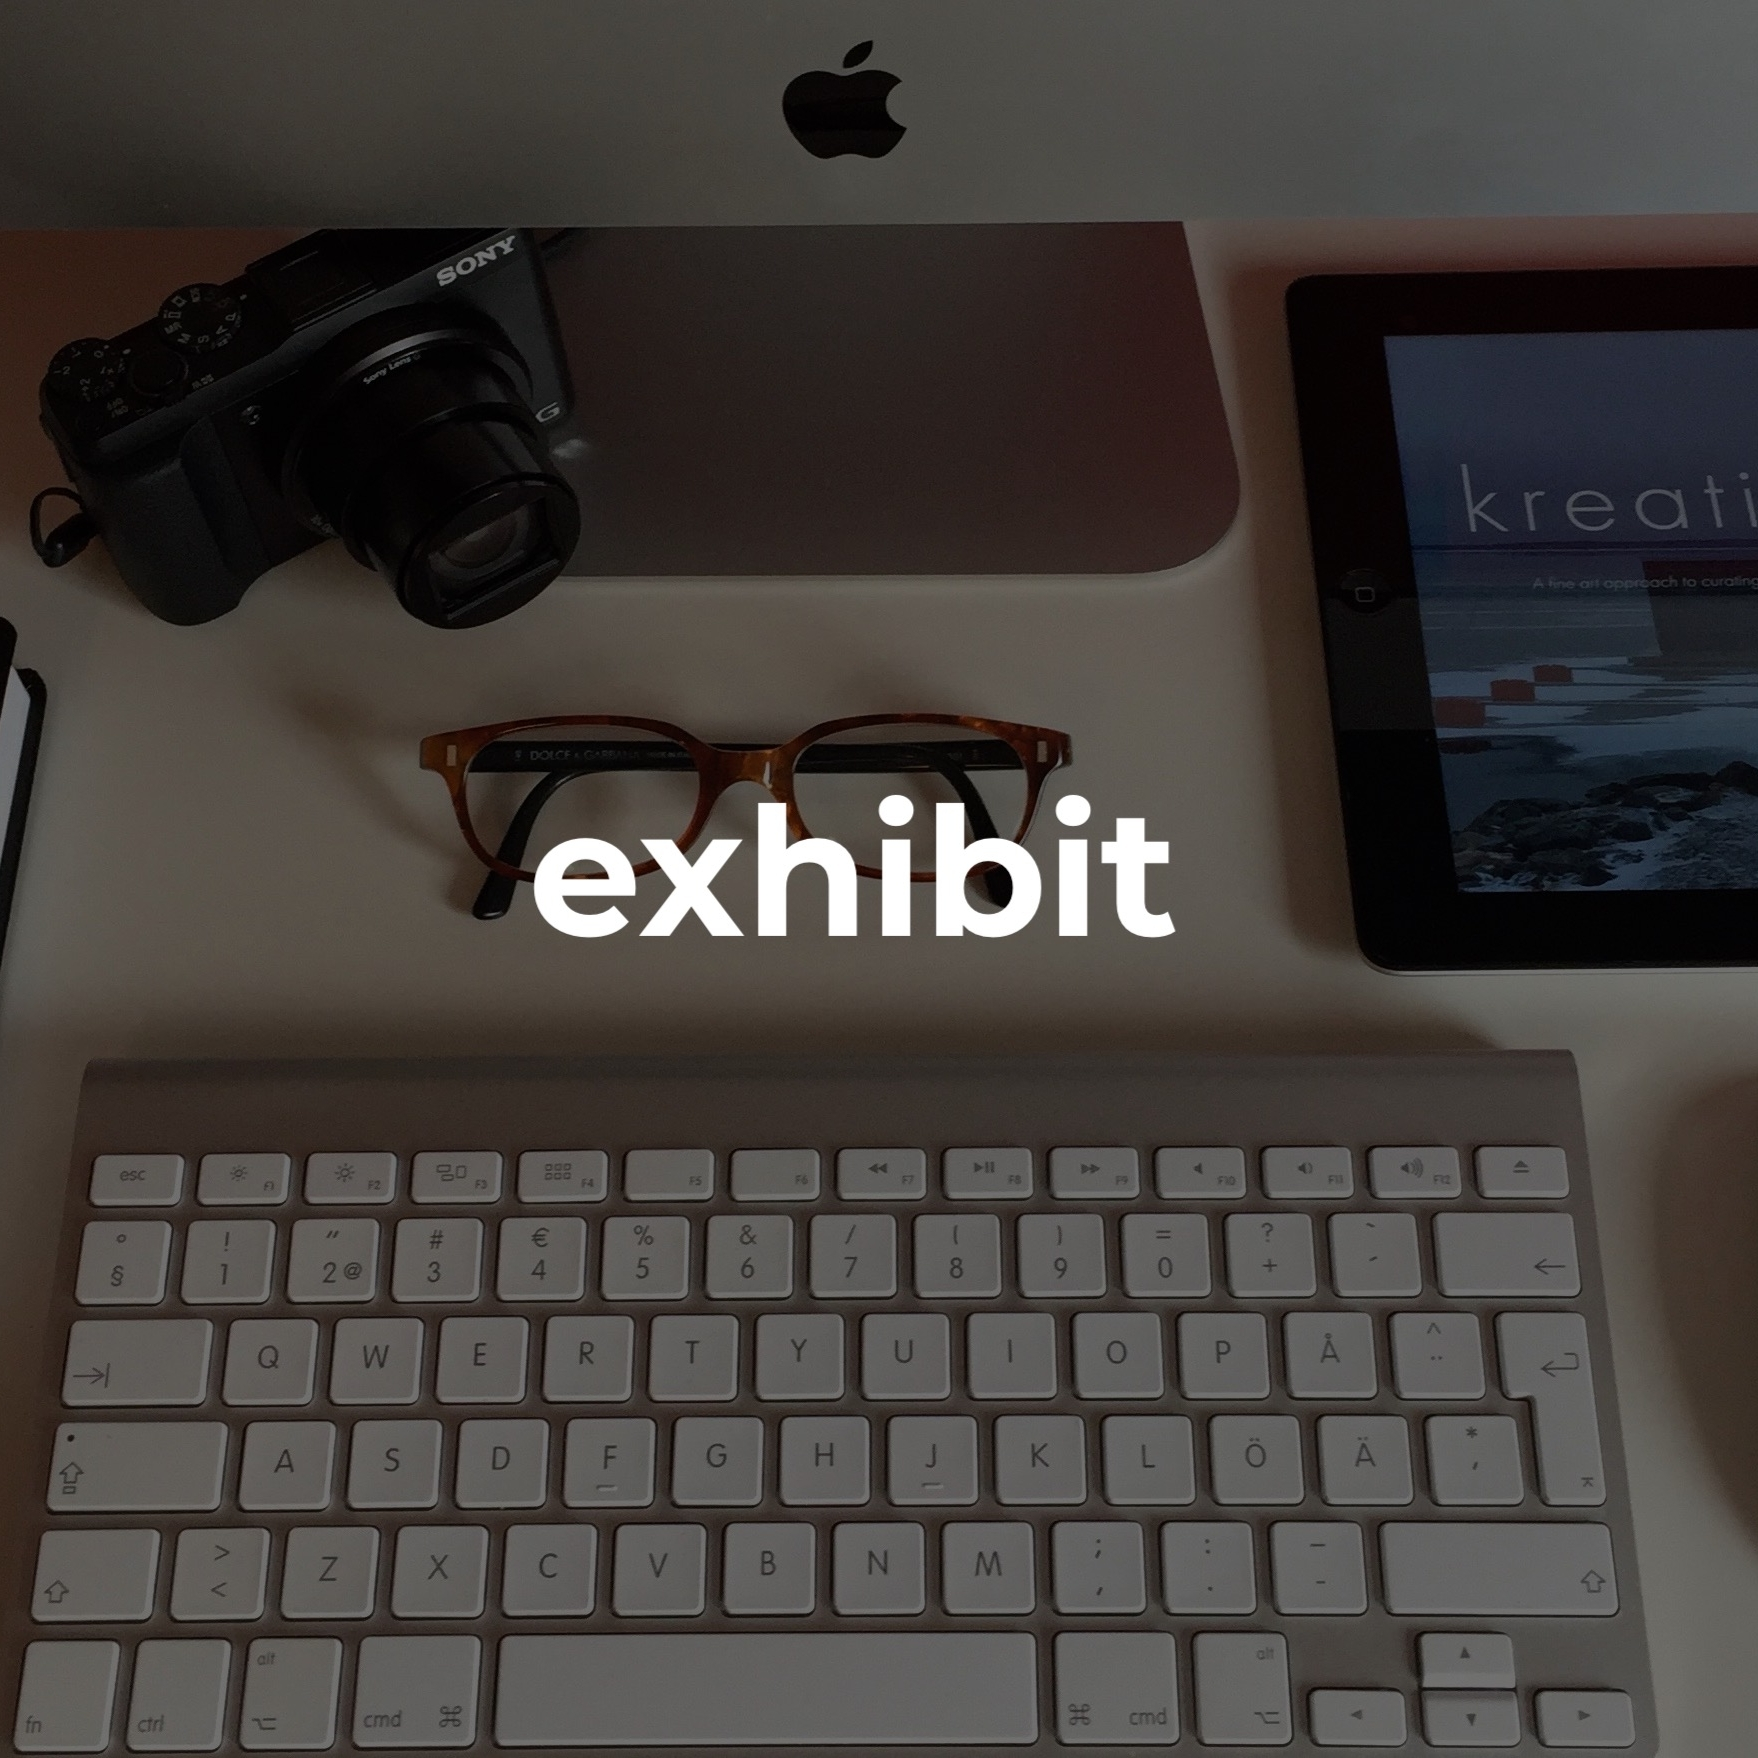 #exhibition   the exhibit is based on your package (or bespoke services) and can include a website, blog, digital/print materials.